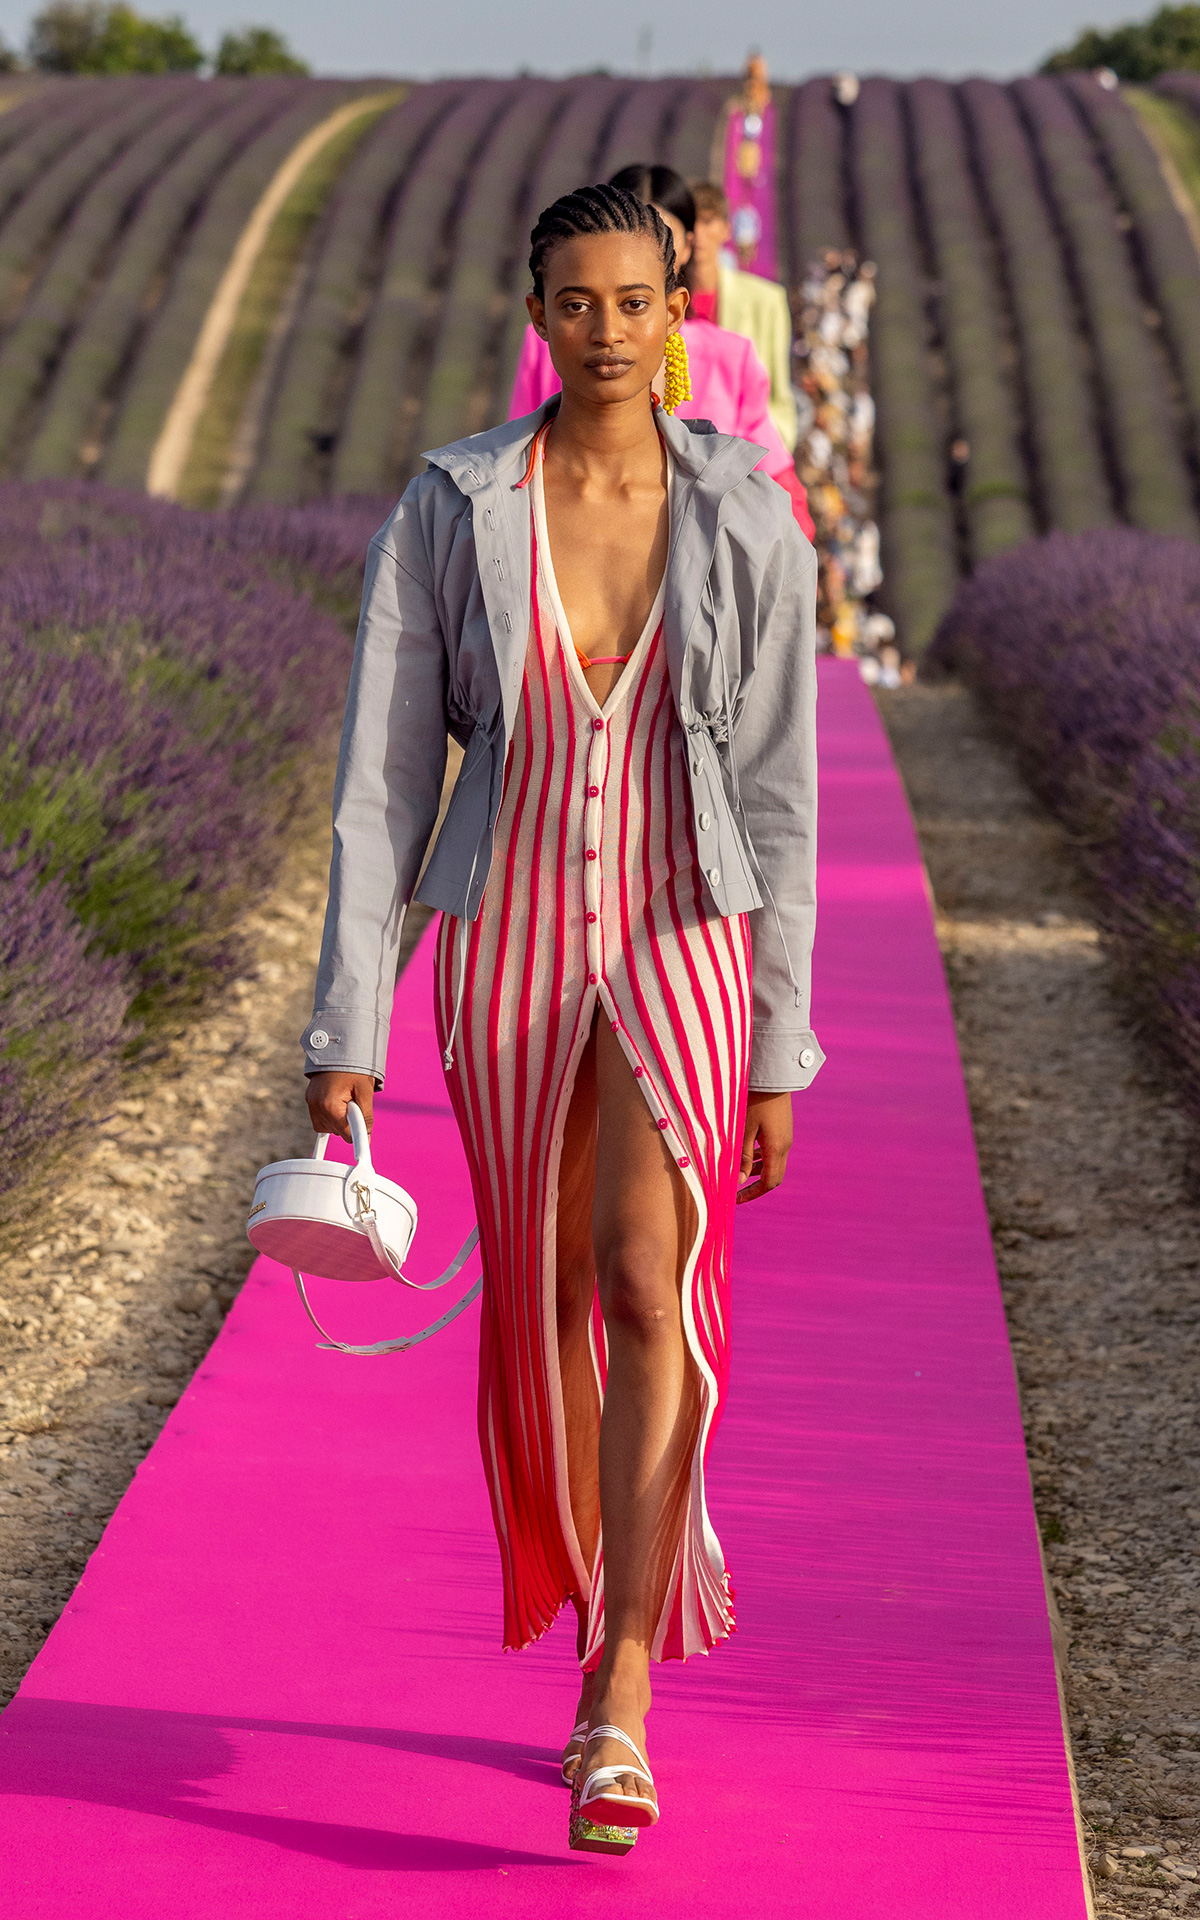 Model walks the runway during the Jacquemus Menswear Spring Summer 2020, 24 June 2019 in Valensole, France